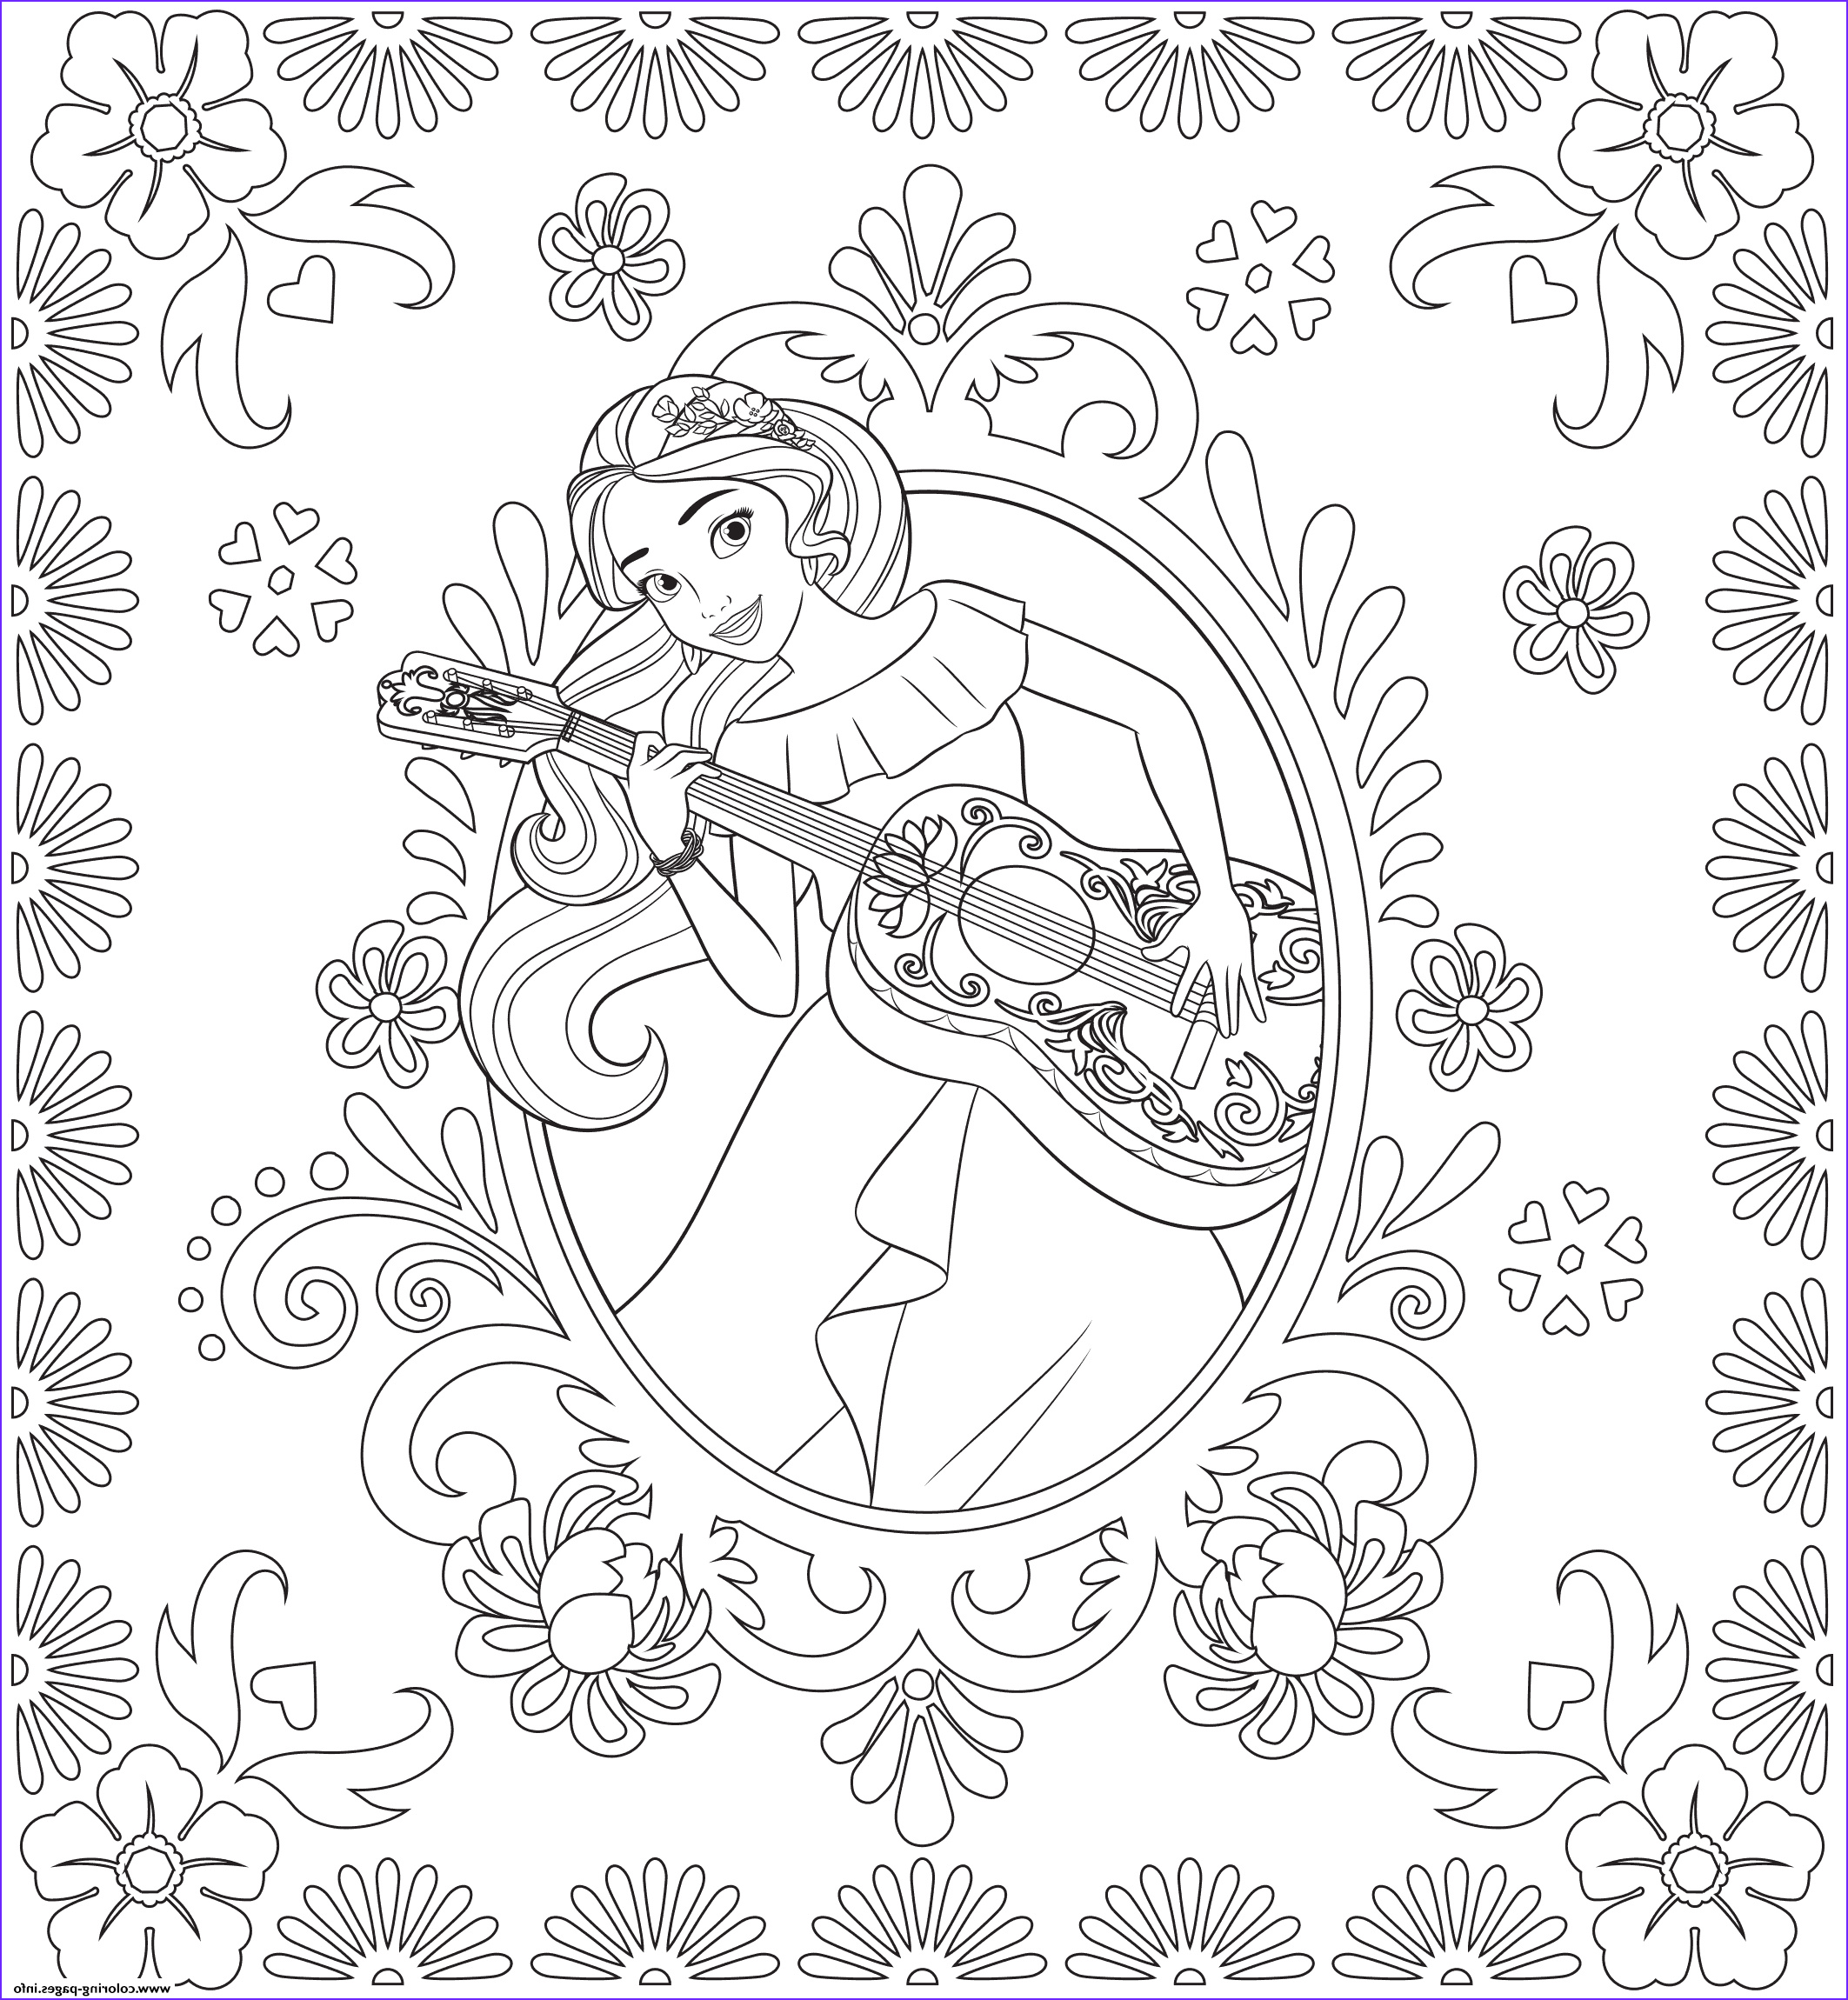 Princess Elena Coloring Page Inspirational Photos Princess Elena Avalor Coloring Pages Coloring Pages